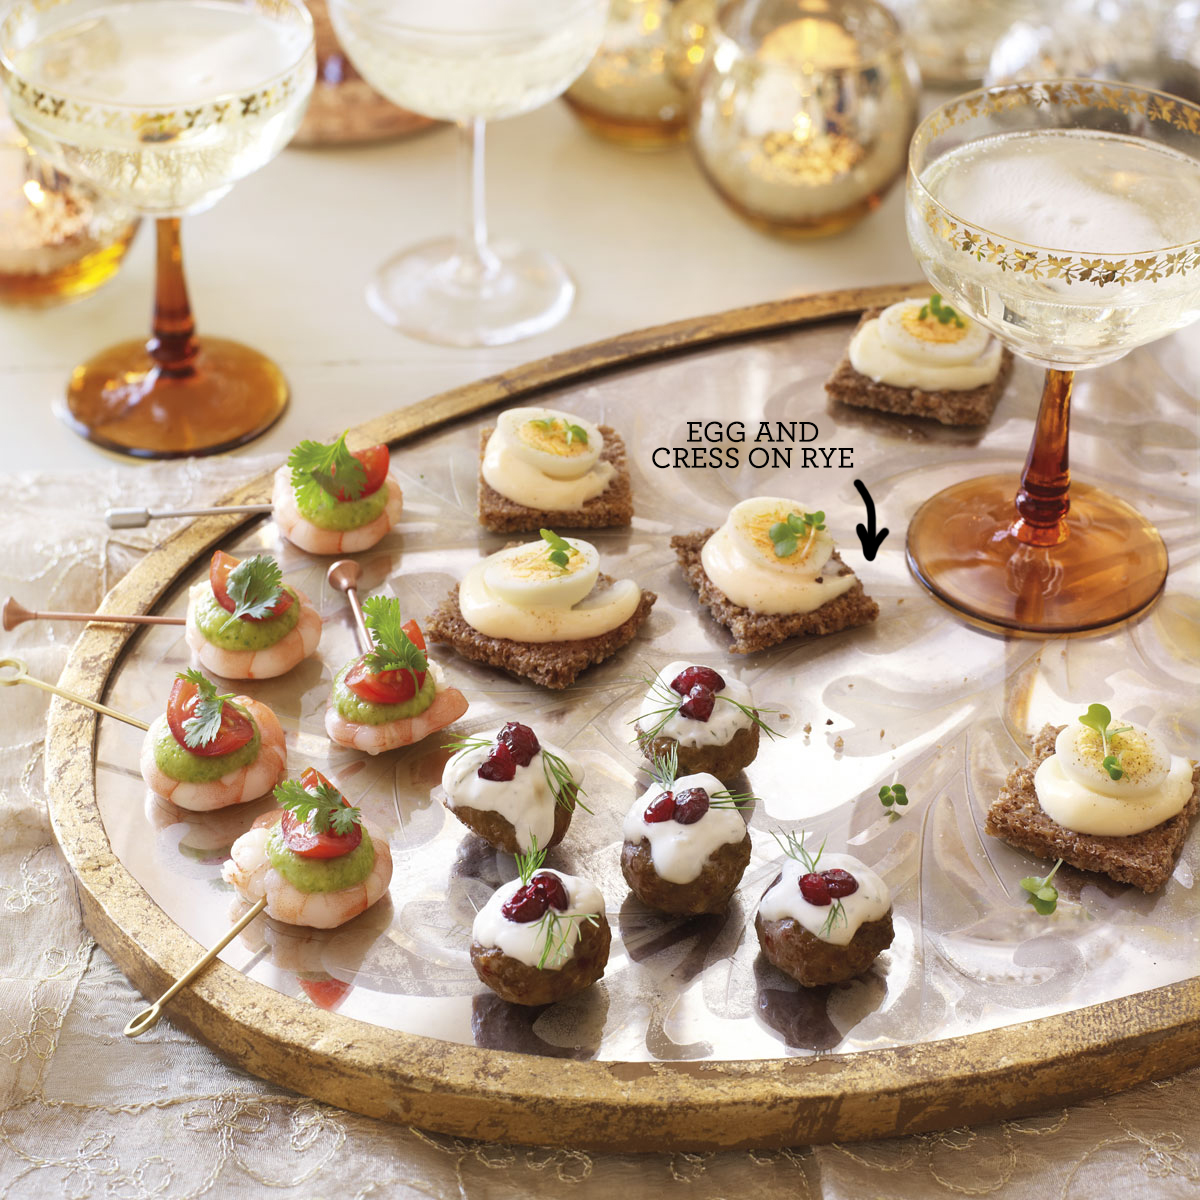 Egg and cress on rye canape recipes good housekeeping for How to make canape